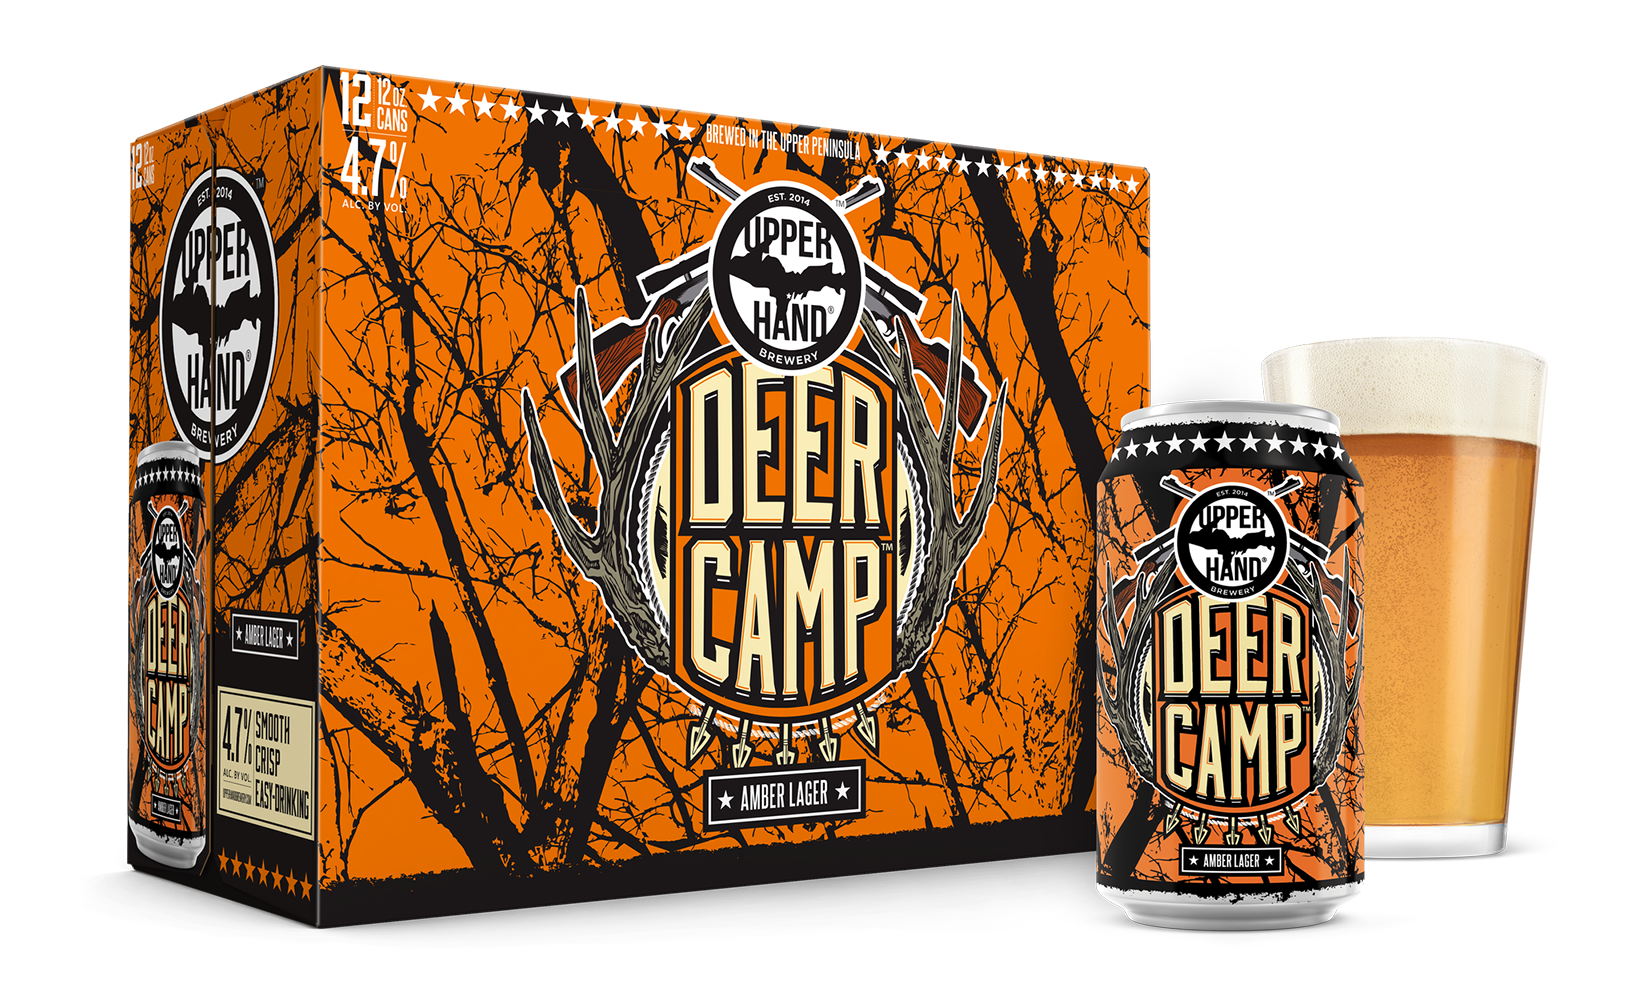 Deer Camp Brand Rendering